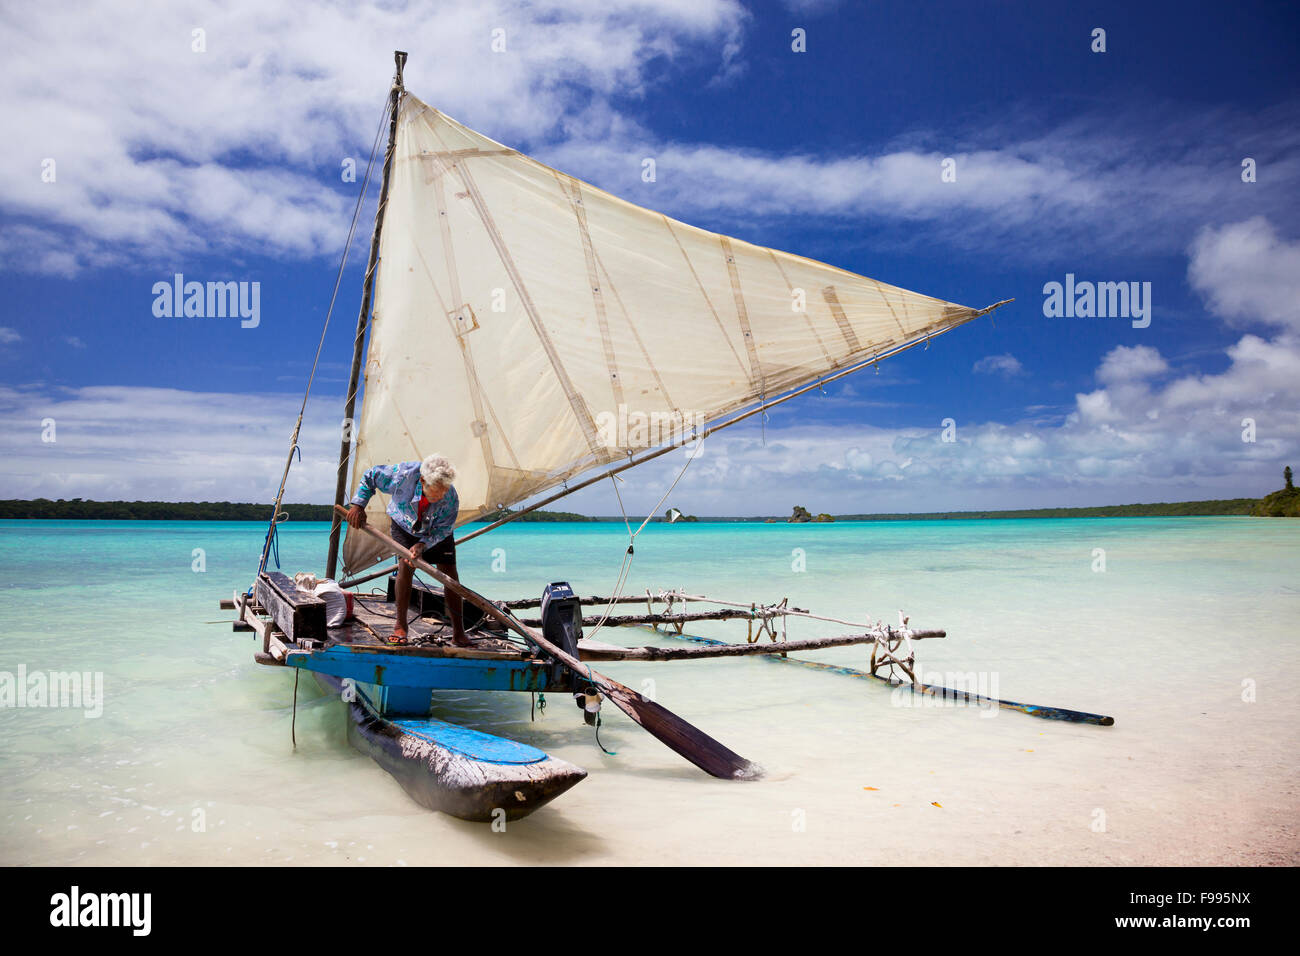 Theodore, a local 'kunie,' prepares a traditional outrigger canoe for sail across the spectacular Upi Bay - Stock Image